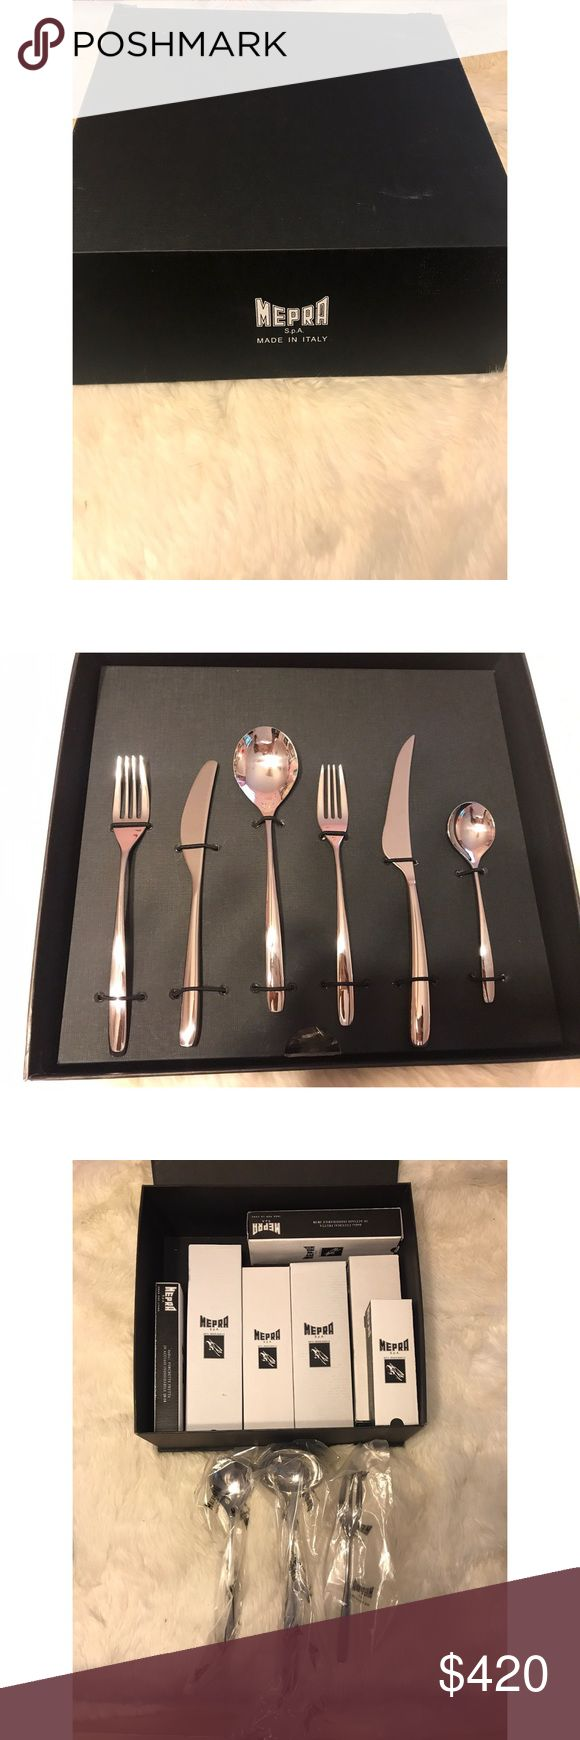 Mepra Unika Special Cutlery Set (87 PC) • One ladle • One serving spoon •One serving fork • 12 table spoons • 12 table forks • 12 table knives • 12 European coffee spoons • 12 dessert spoons • 12 dessert forks • 12 dessert knives  Features:  87 piece cutlery set Made of 18/10 stainless steel Packaged in a gift box Mepra Other